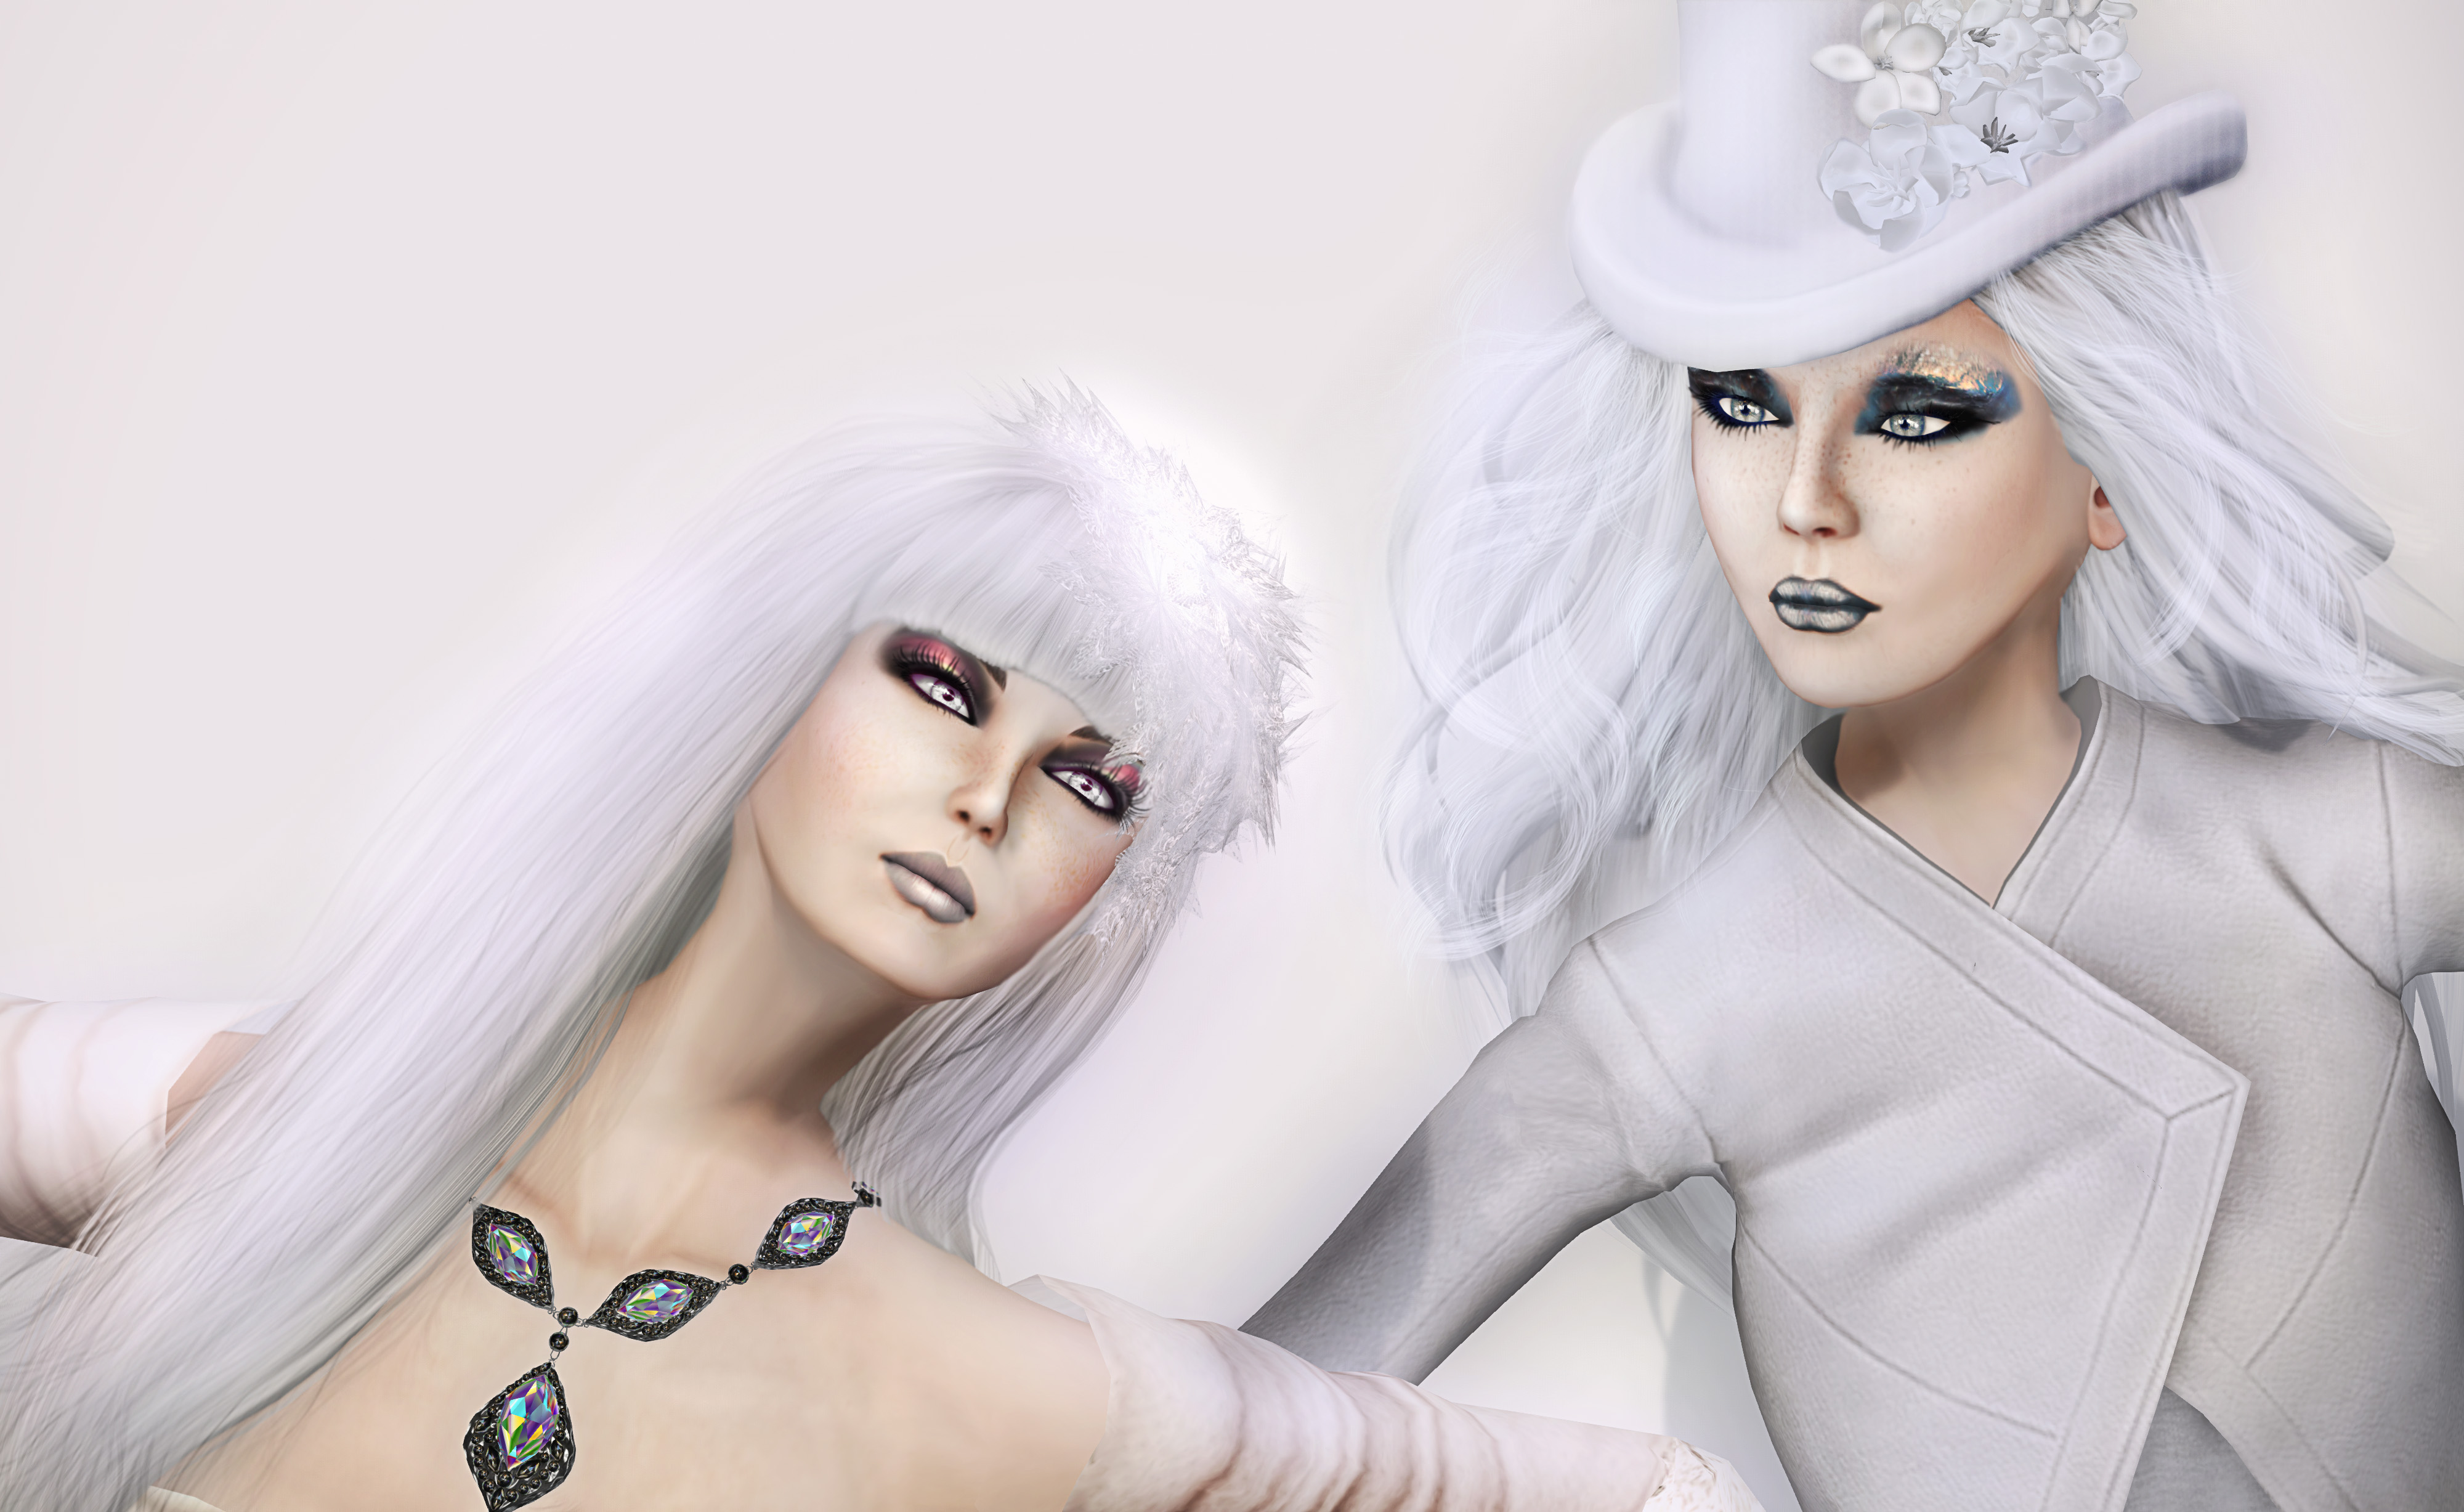 Silken Moon Wicca and Mal